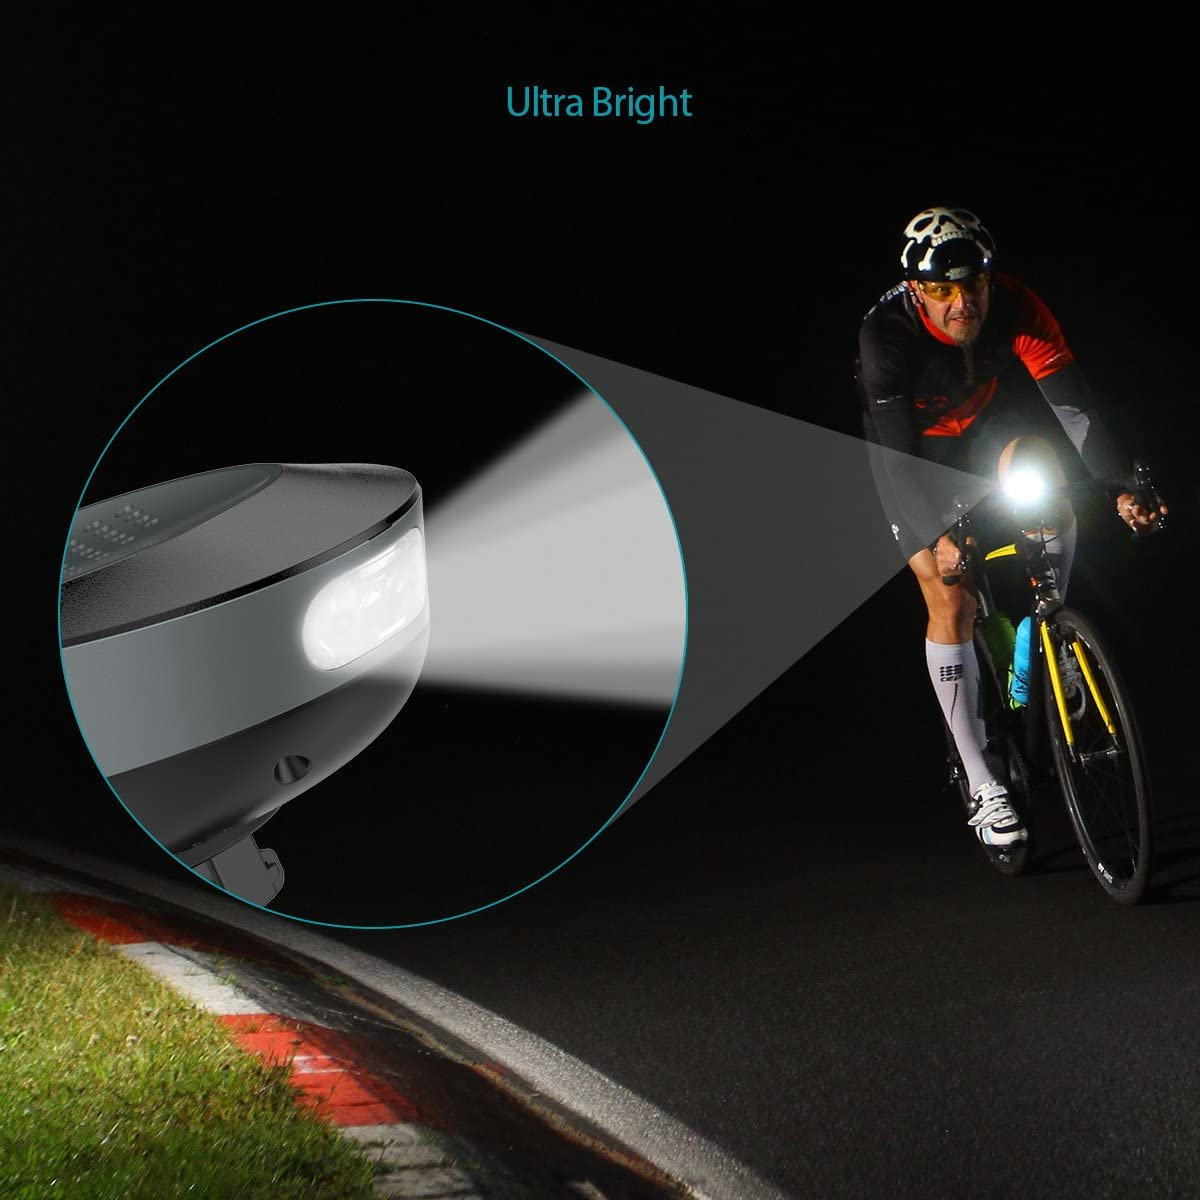 Road Bikes LED Headlight Bicycle Speaker with Mount IPX4 Waterproof and Rechargeable for Cycling Mountain Bikes TOENNESEN Bluetooth 4.1 Bike Wireless Speaker